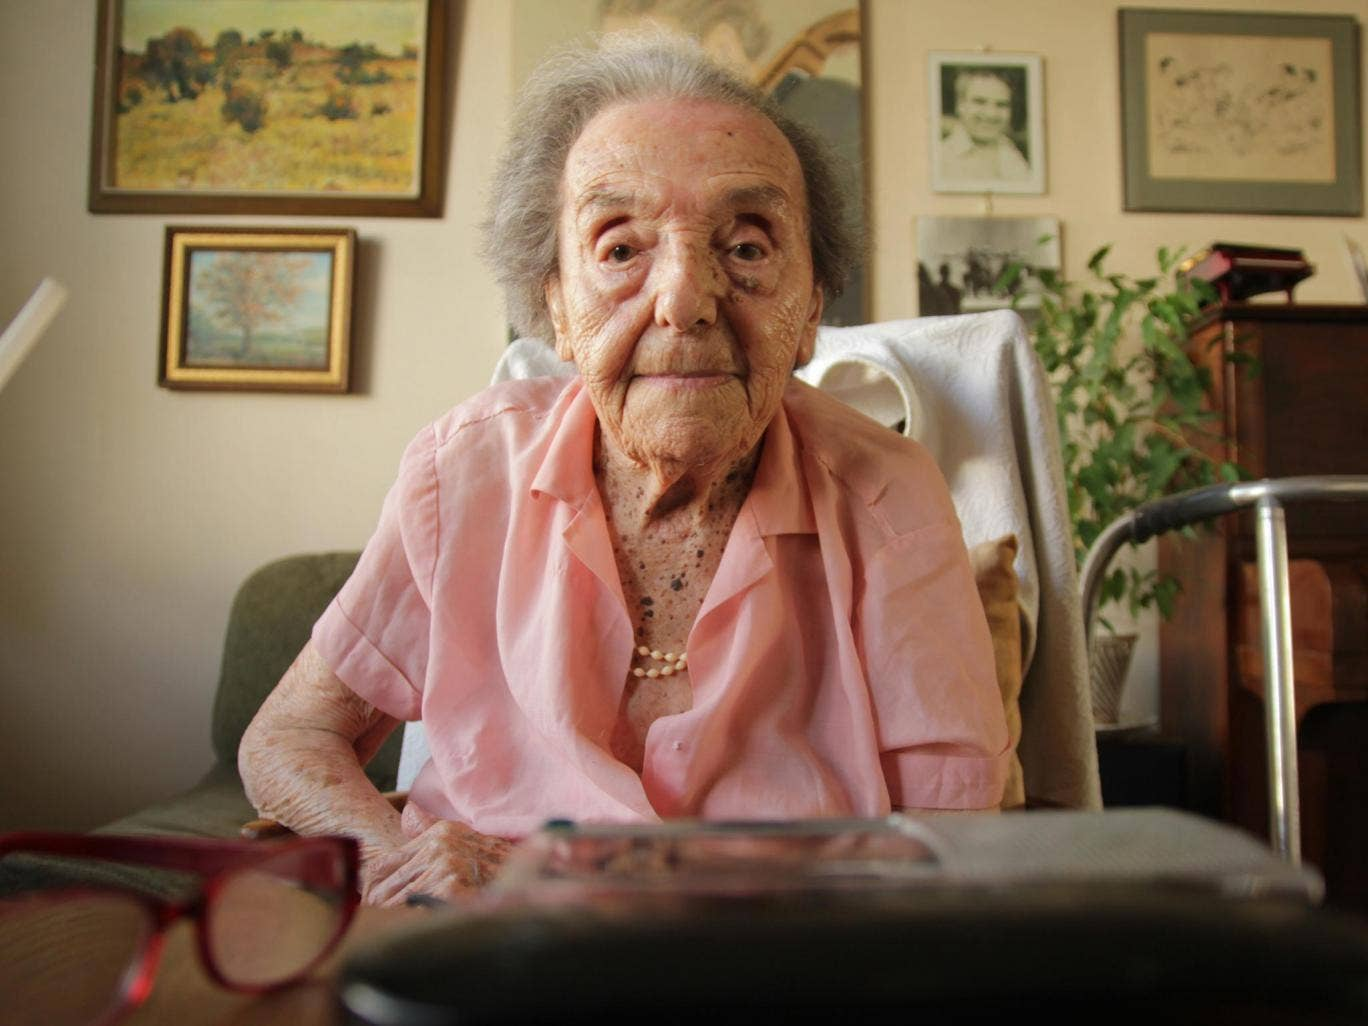 Alice Herz-Sommer, believed to be the oldest-known survivor of the Holocaust, has died at the age of 110